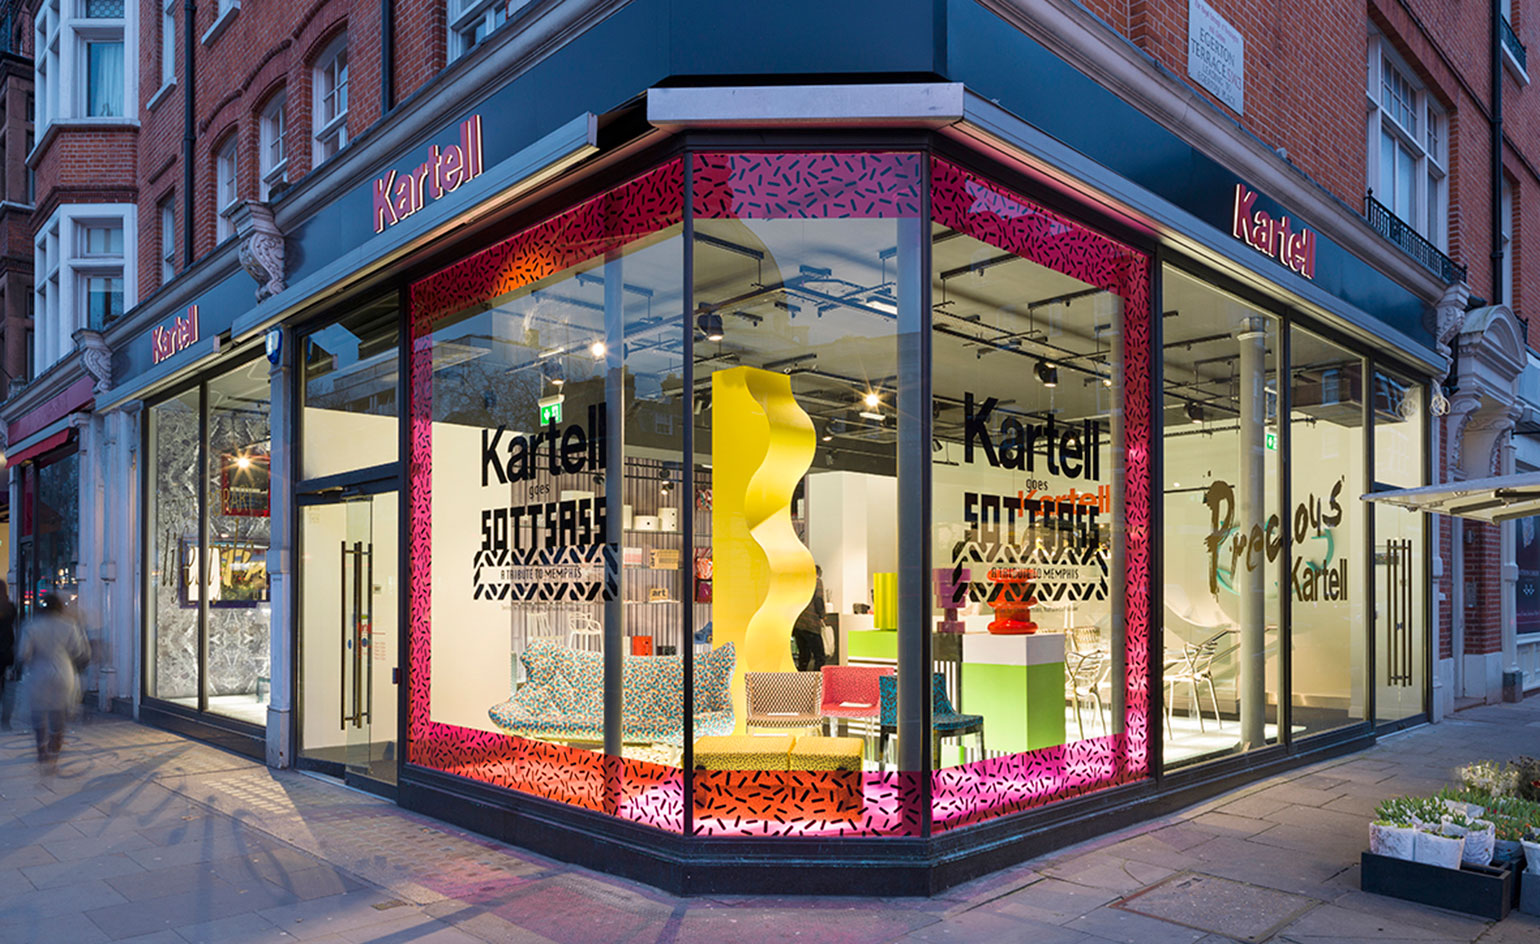 02_kartell-london-flagship-store_by-andrew-meredith